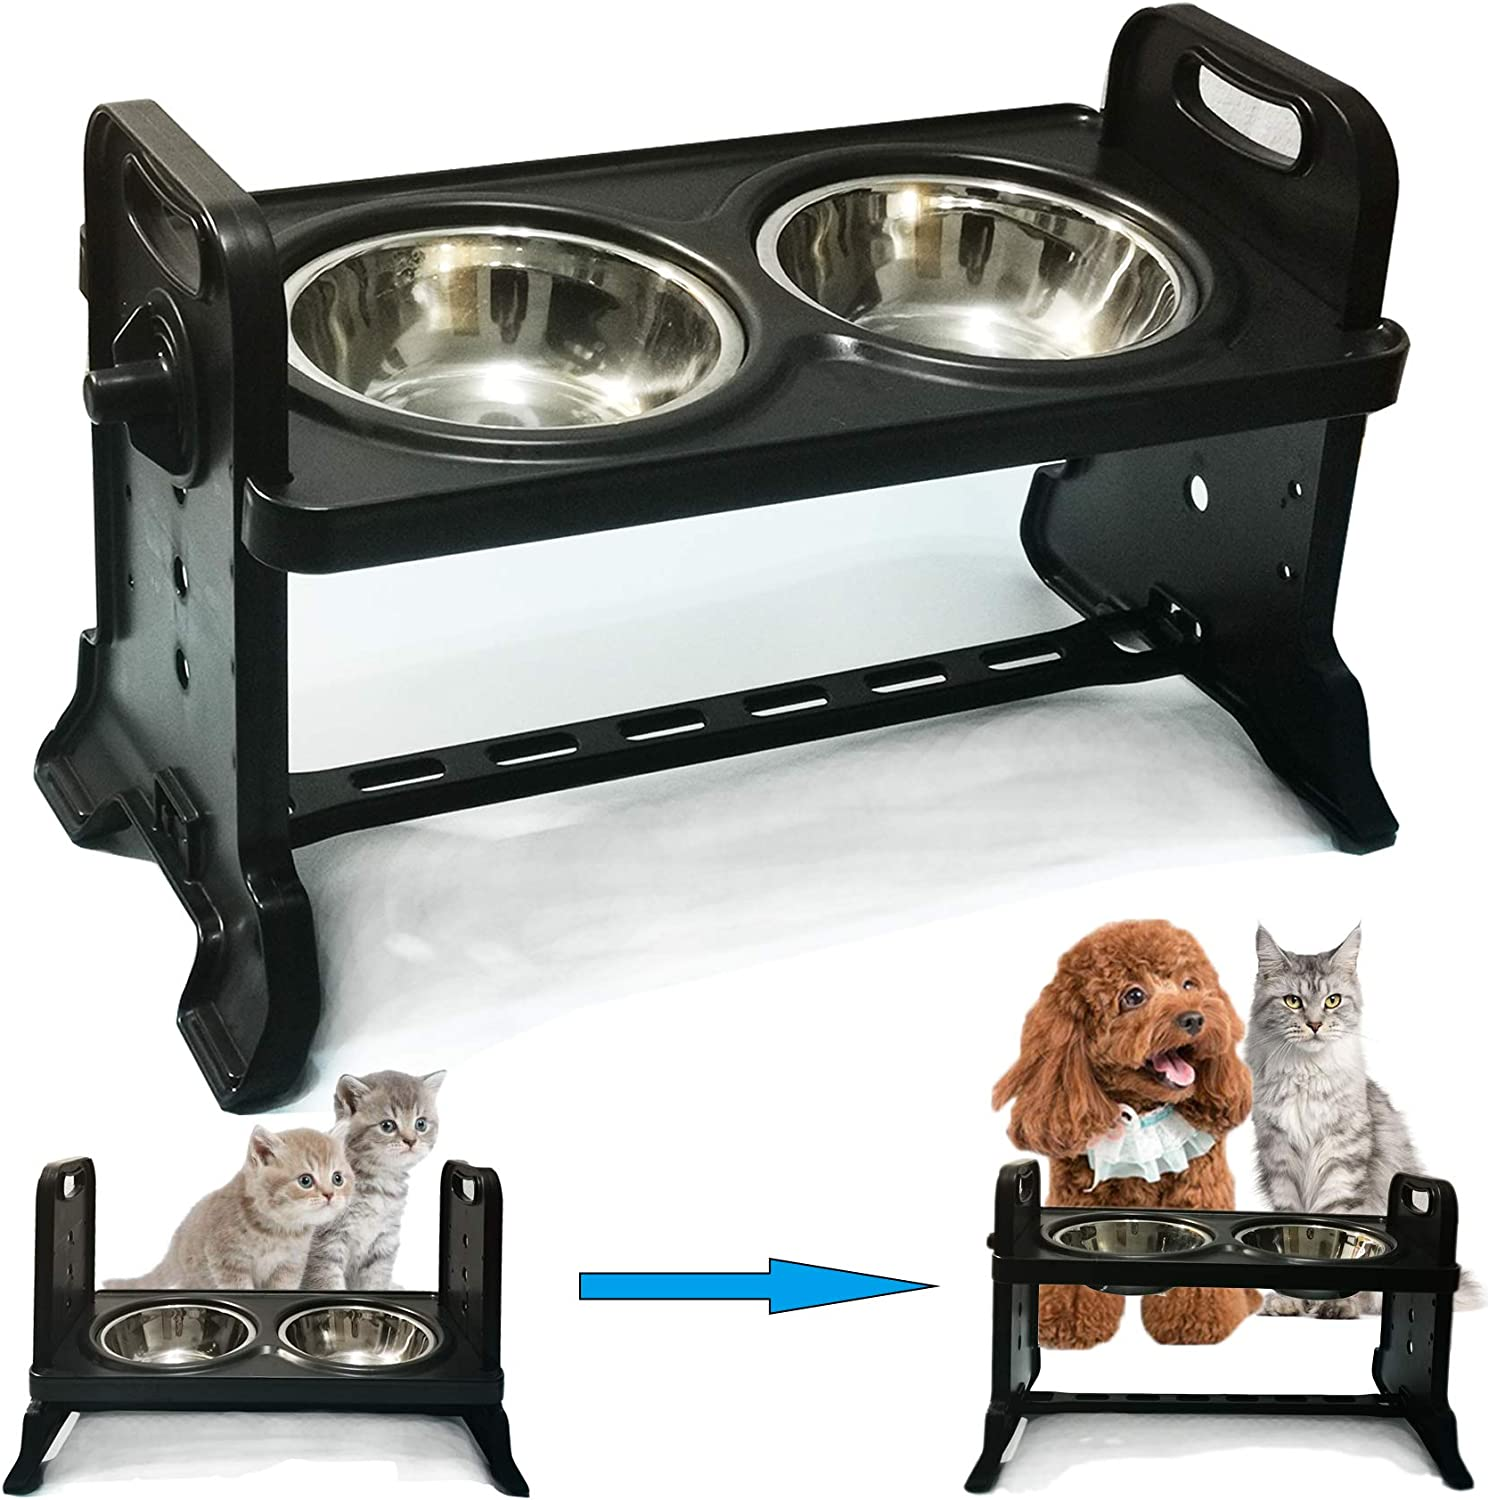 Height-Adjustable Cat Bowl,Raised Cat Food Bowls Anti Vomiting,Tilted Elevated Cat Bowl,Stainless Steel Pet Food Bowl for Flat-Faced Cats,Small Dogs,Protect Pet's Spine,Dishwasher Safe (Black-New)